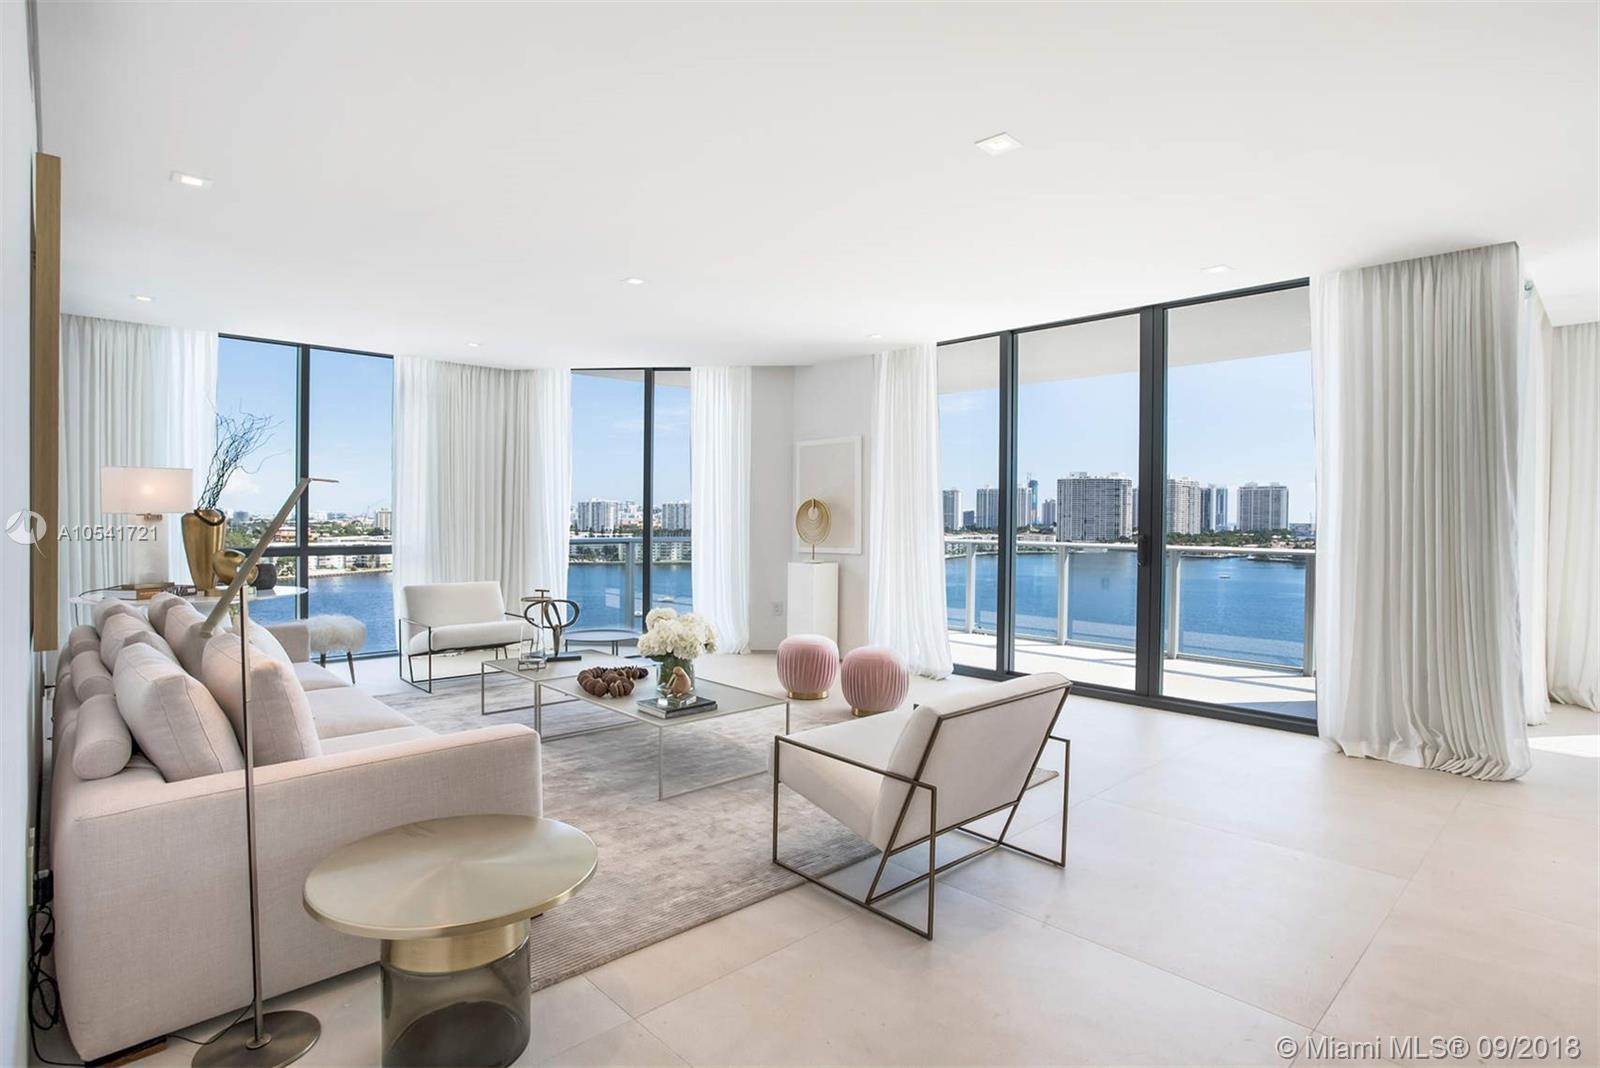 Marina Palms 1 #1209 - 17111 Biscayne Blvd #1209, North Miami, FL 33160